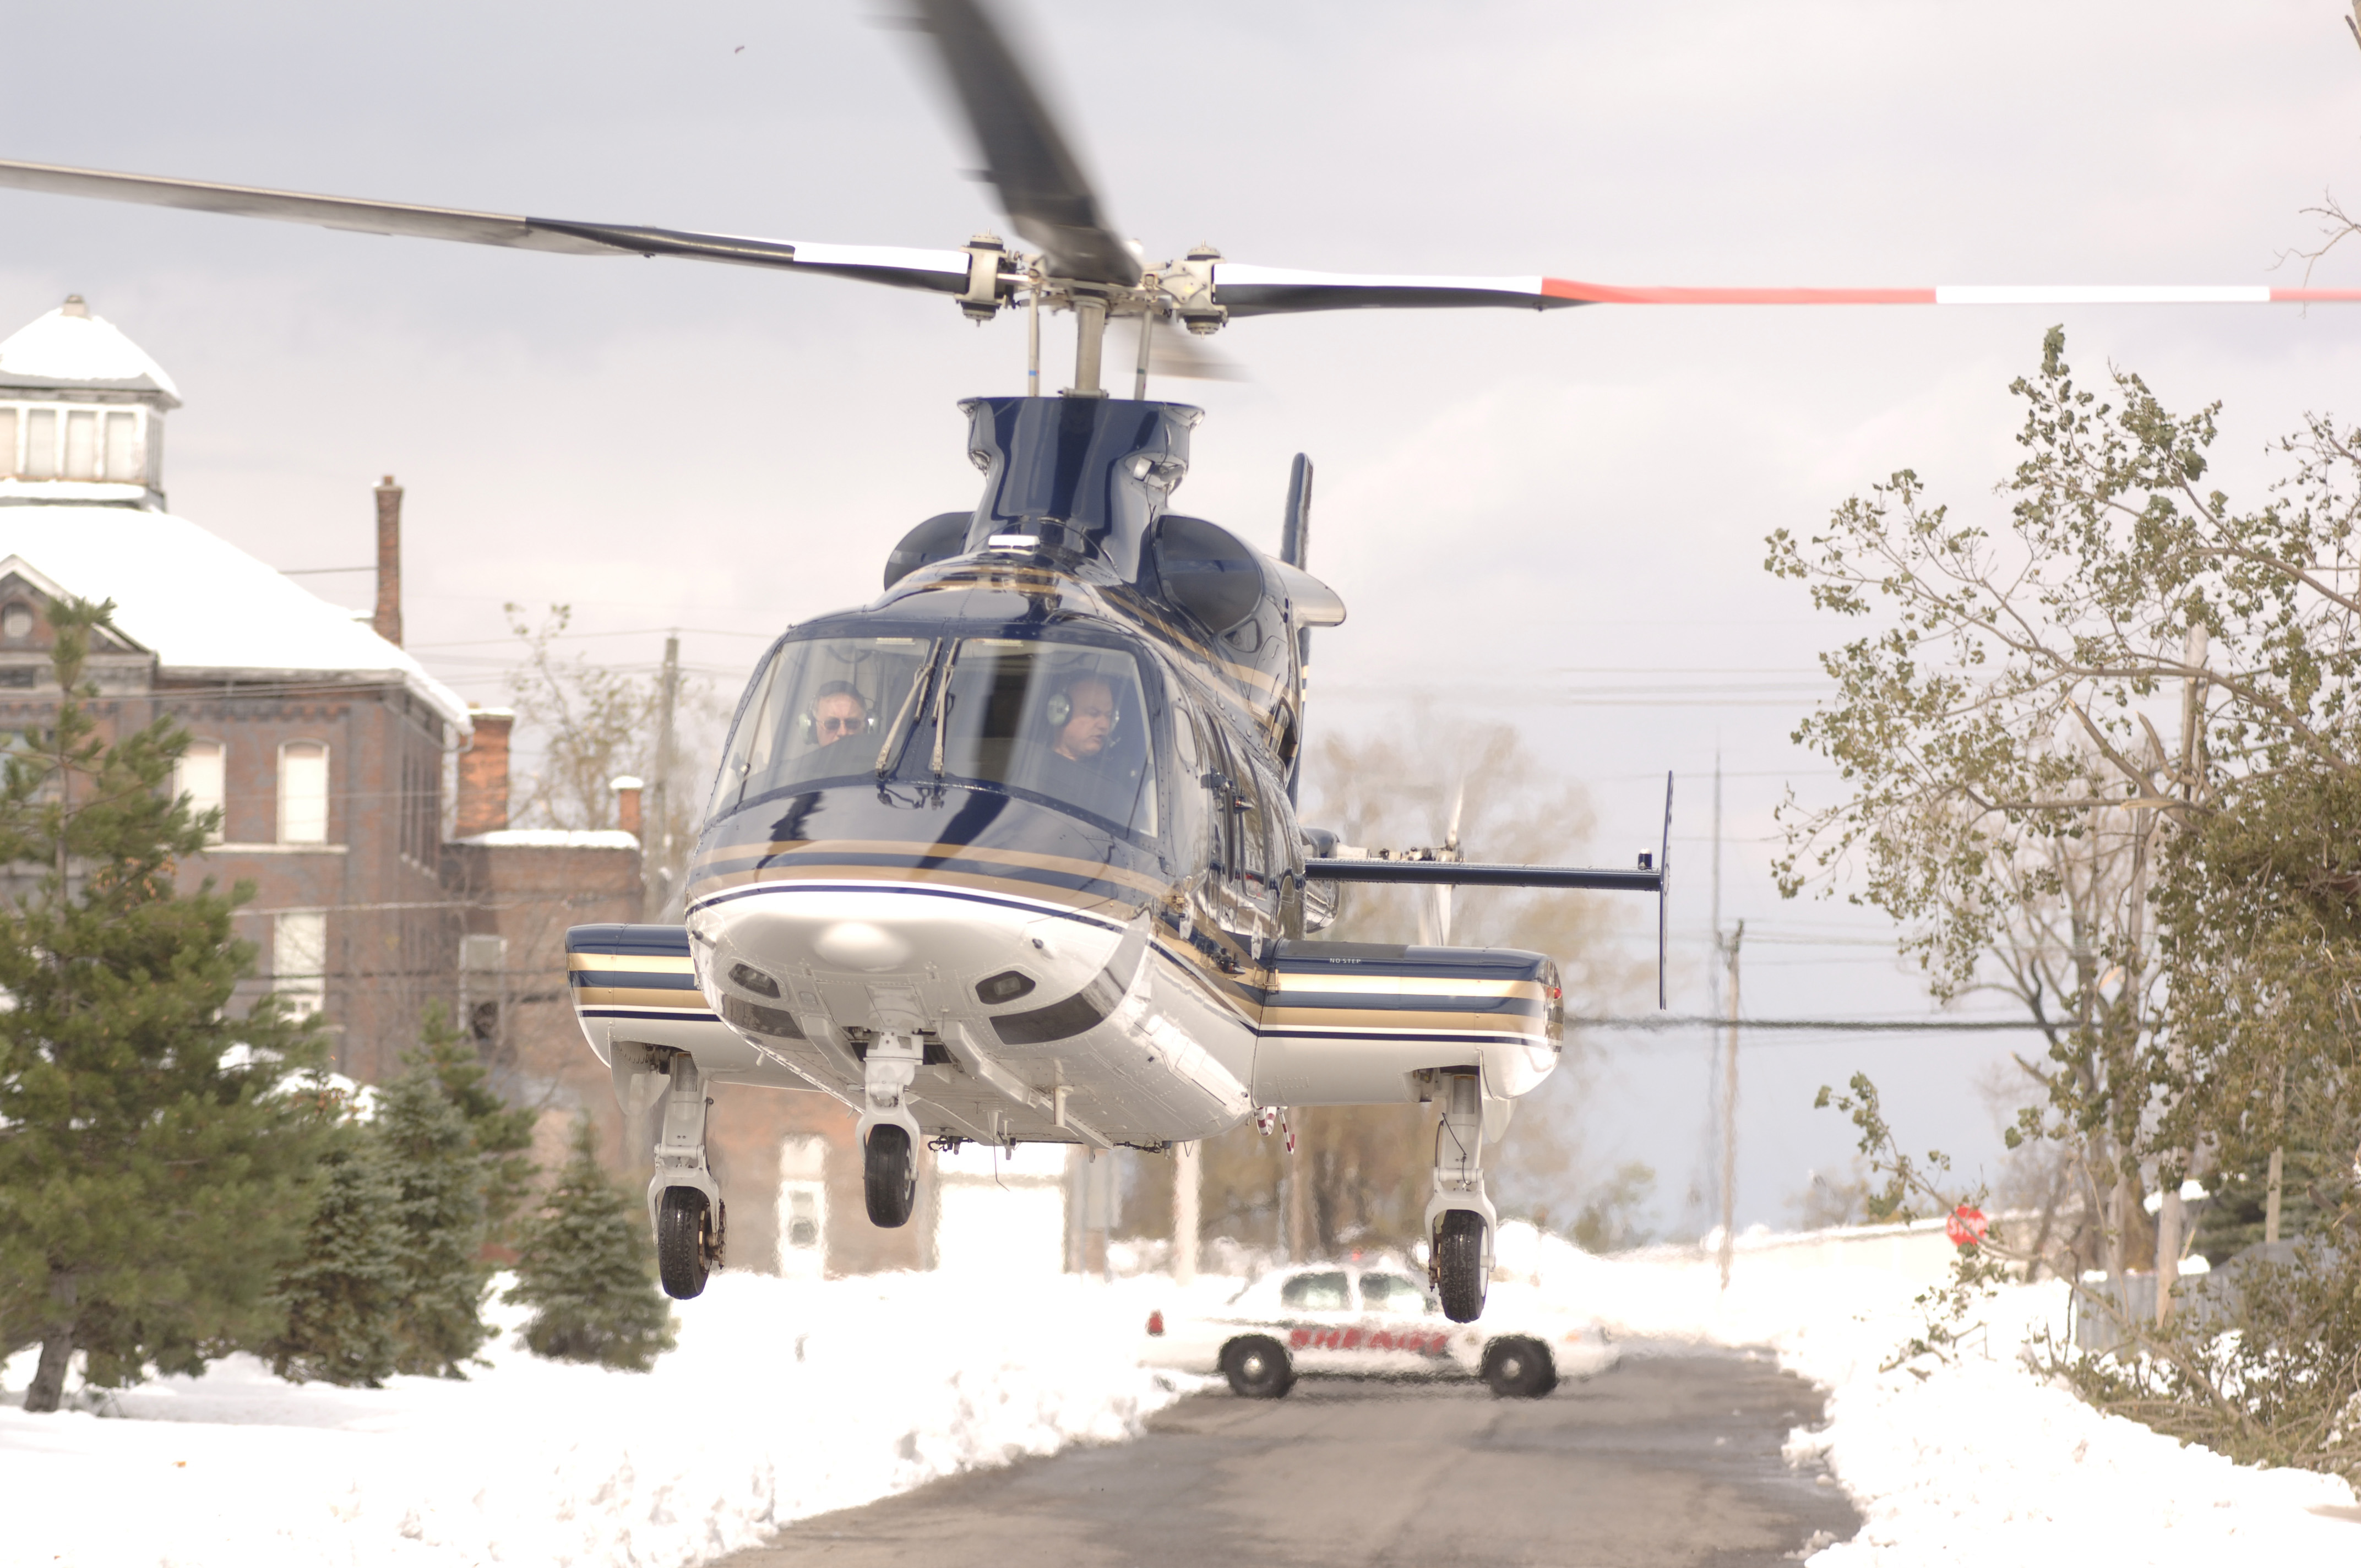 A state police helicopter carrying Gov. George Pataki, County Executive Joel Giambra, Mayor Byron Brown and Rep. Tom Reynolds takes off outside the Erie County Emergency Services Operations Center in Cheektowaga to survey damage from the freak October snow storm in 2006.  (Derek Gee/News file photo)